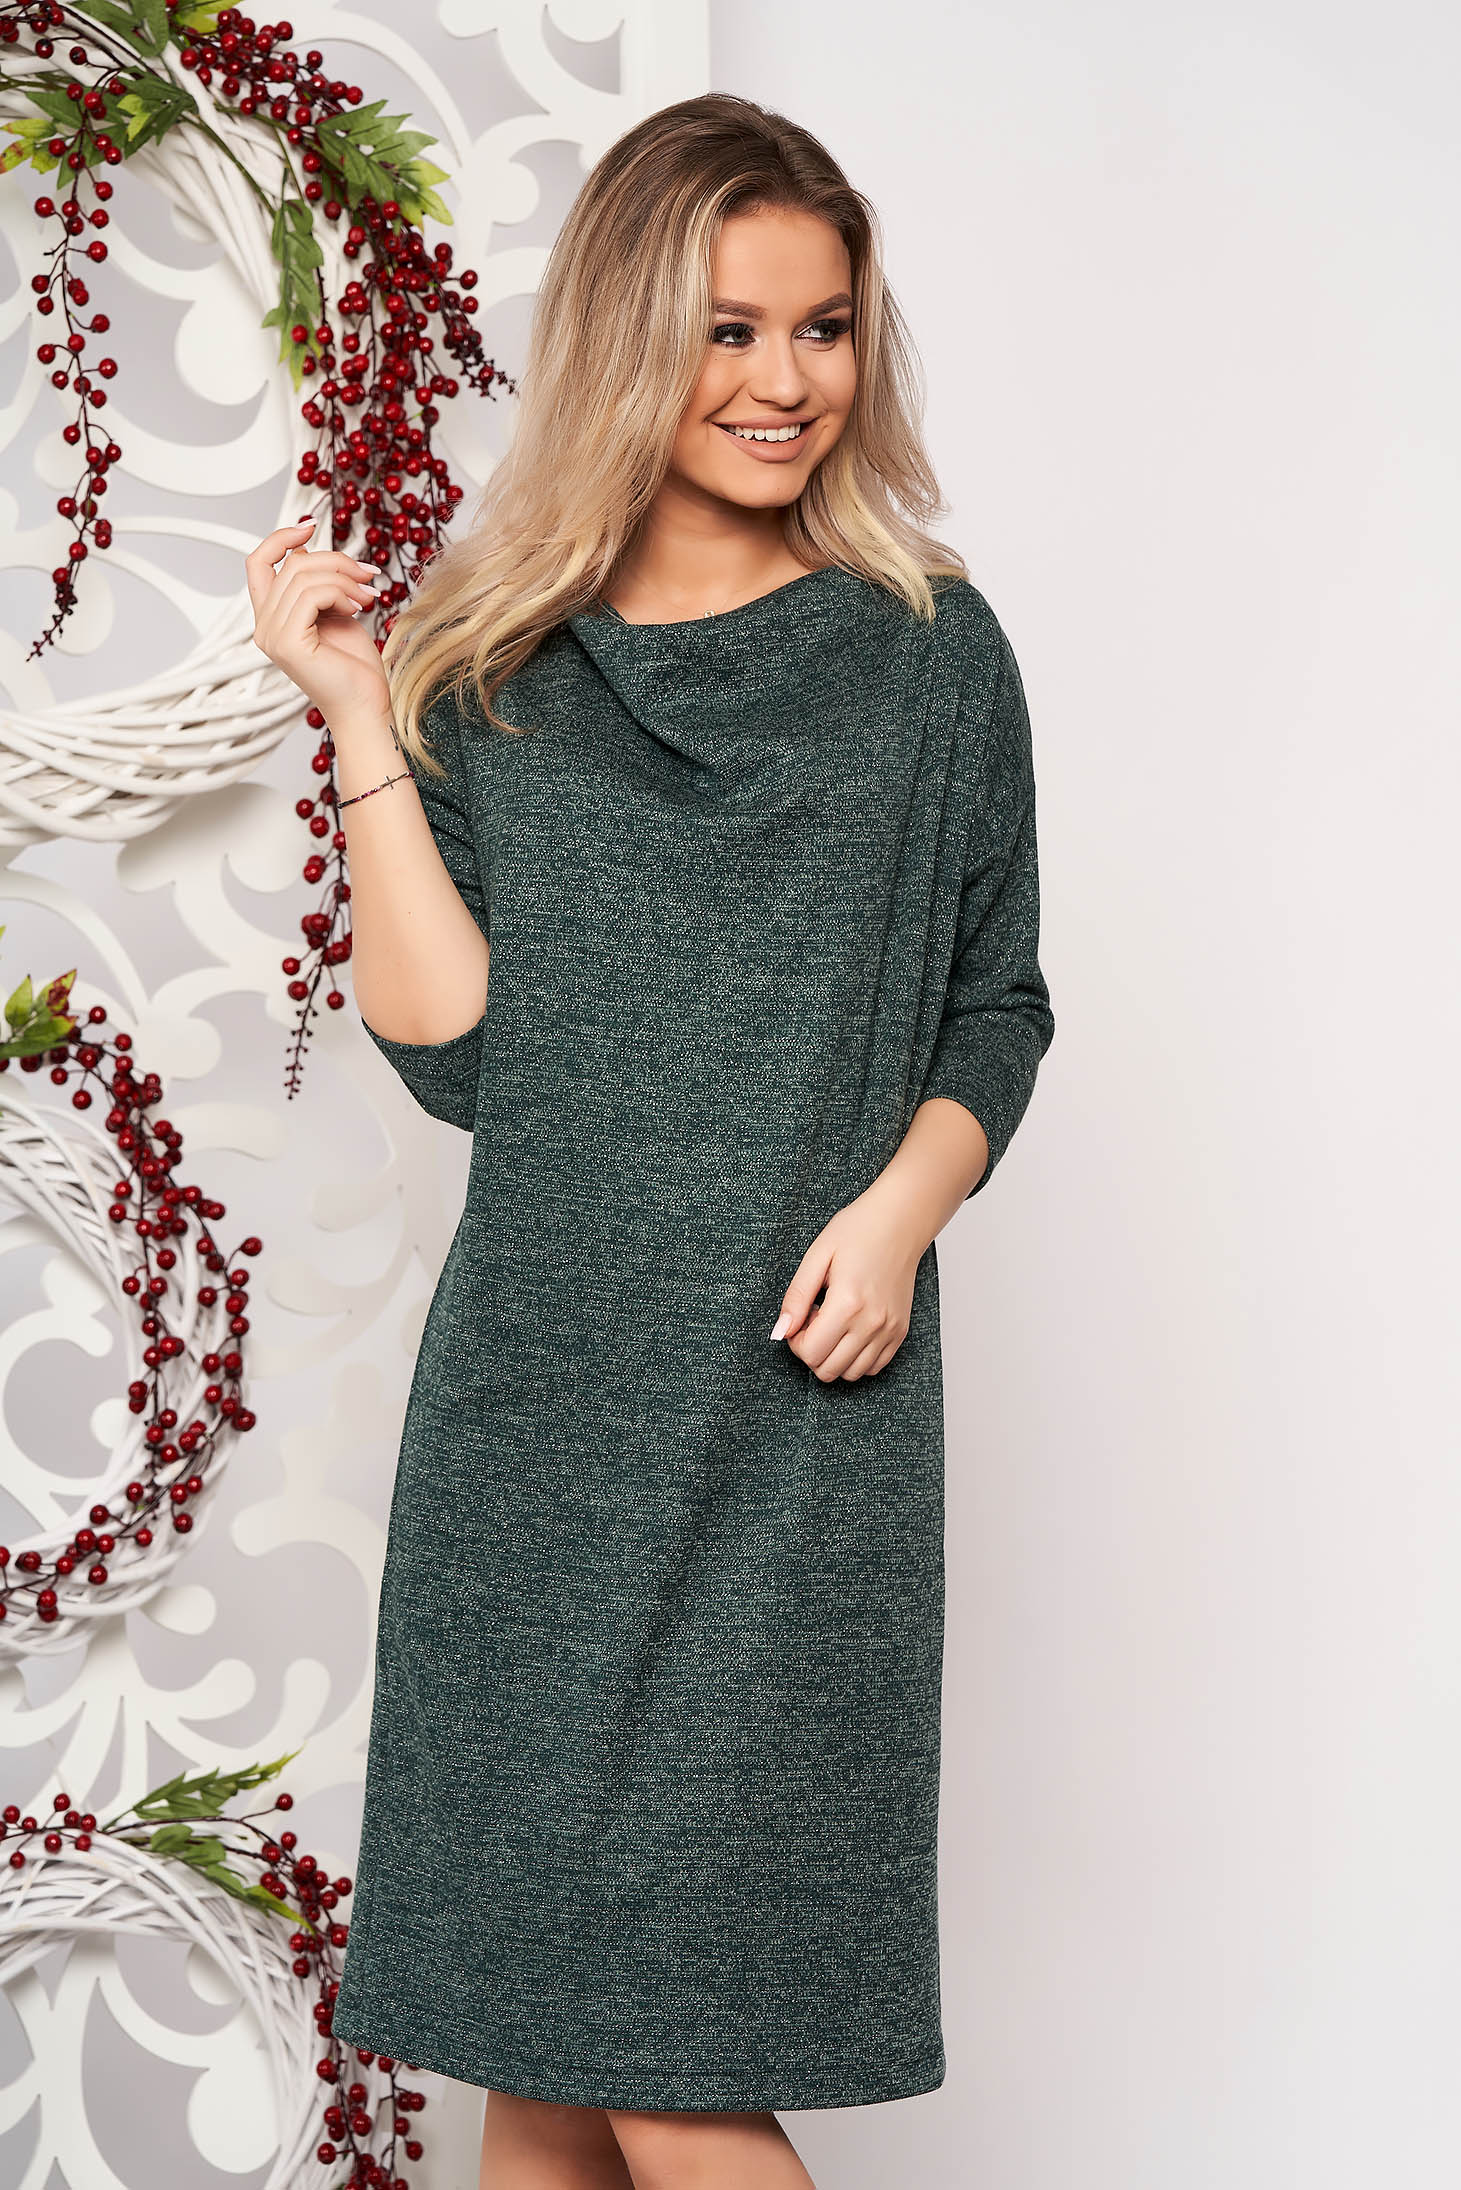 StarShinerS dress green knitted fabric with easy cut